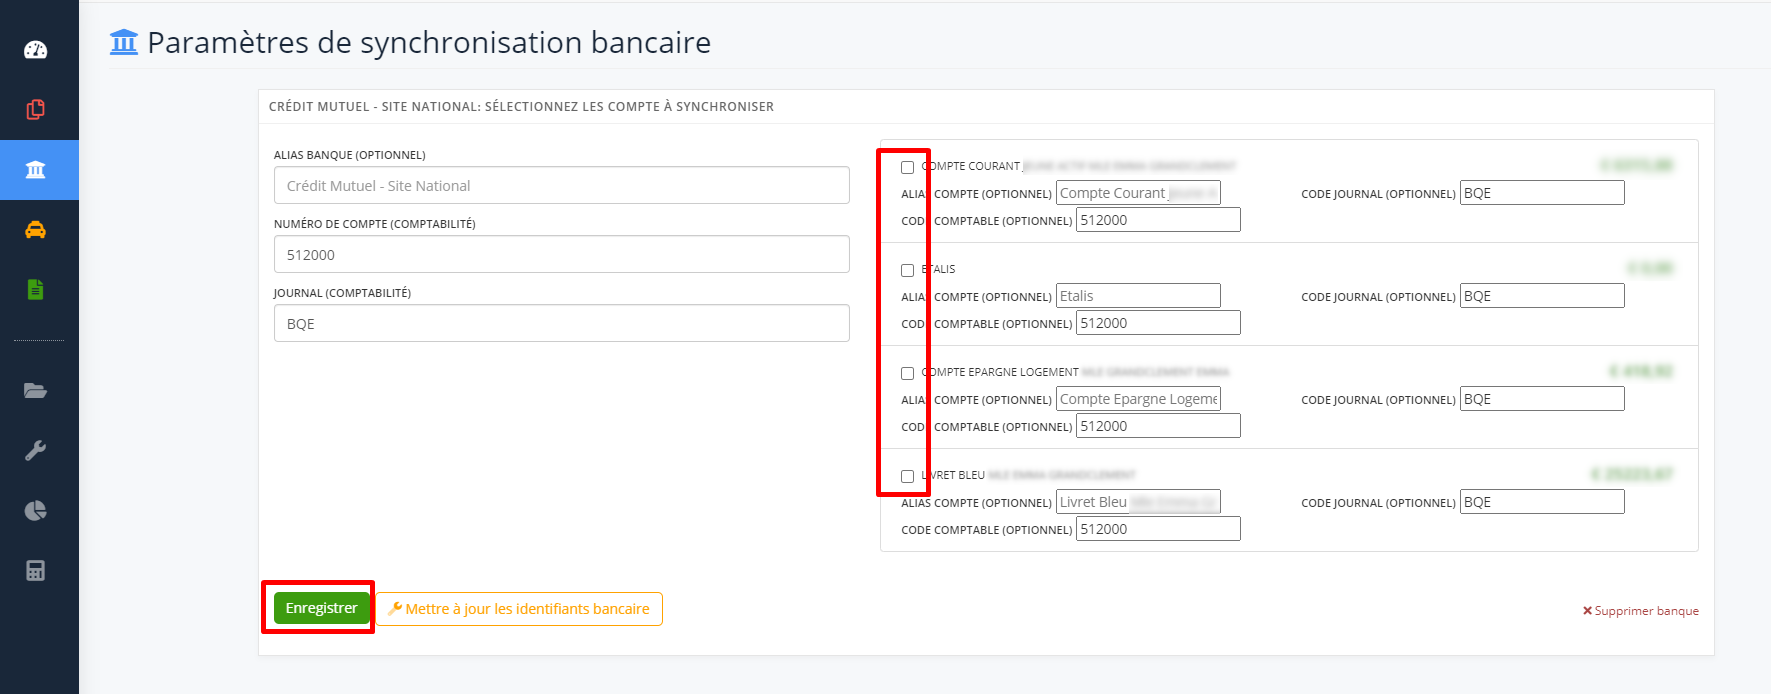 ipaidthat_choix_compte_syncrhoniser_banque.png